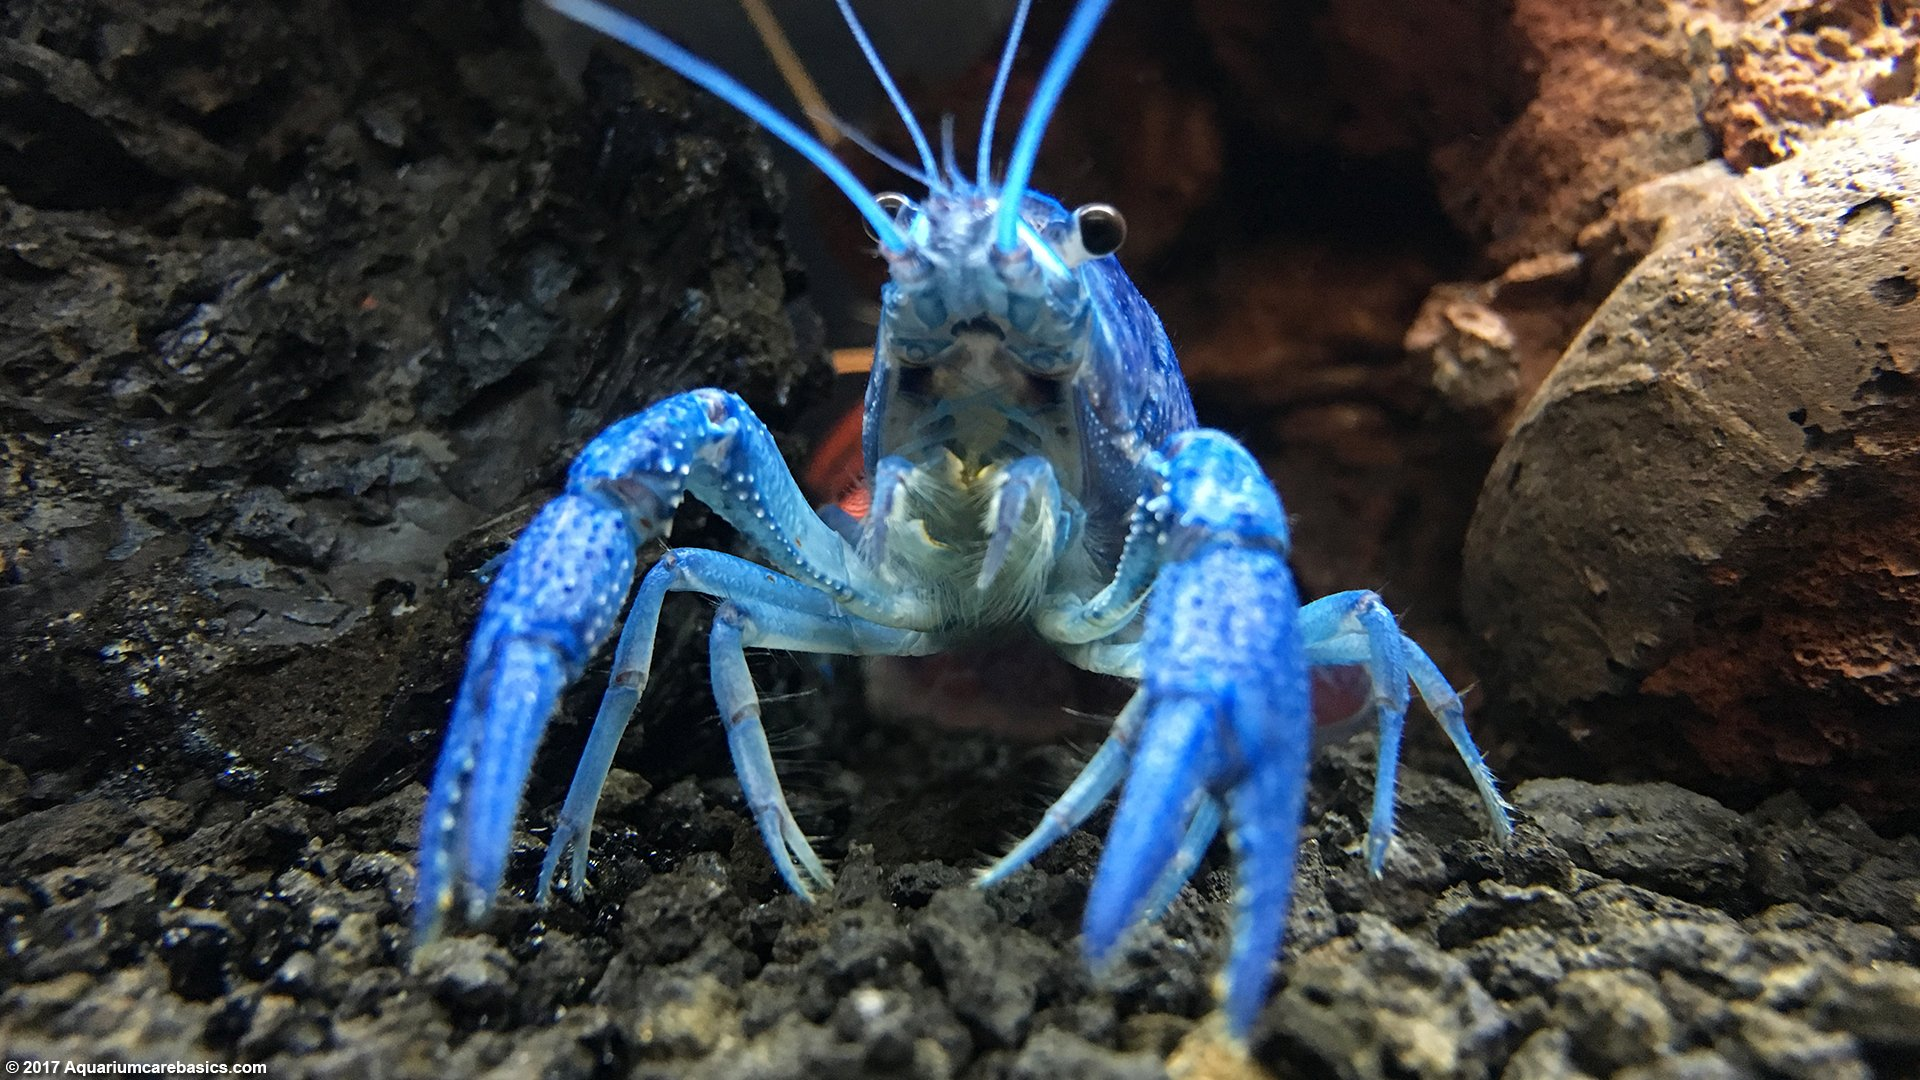 Hammers Cobalt Blue Lobster: Care, Size, Color, Food & Diet